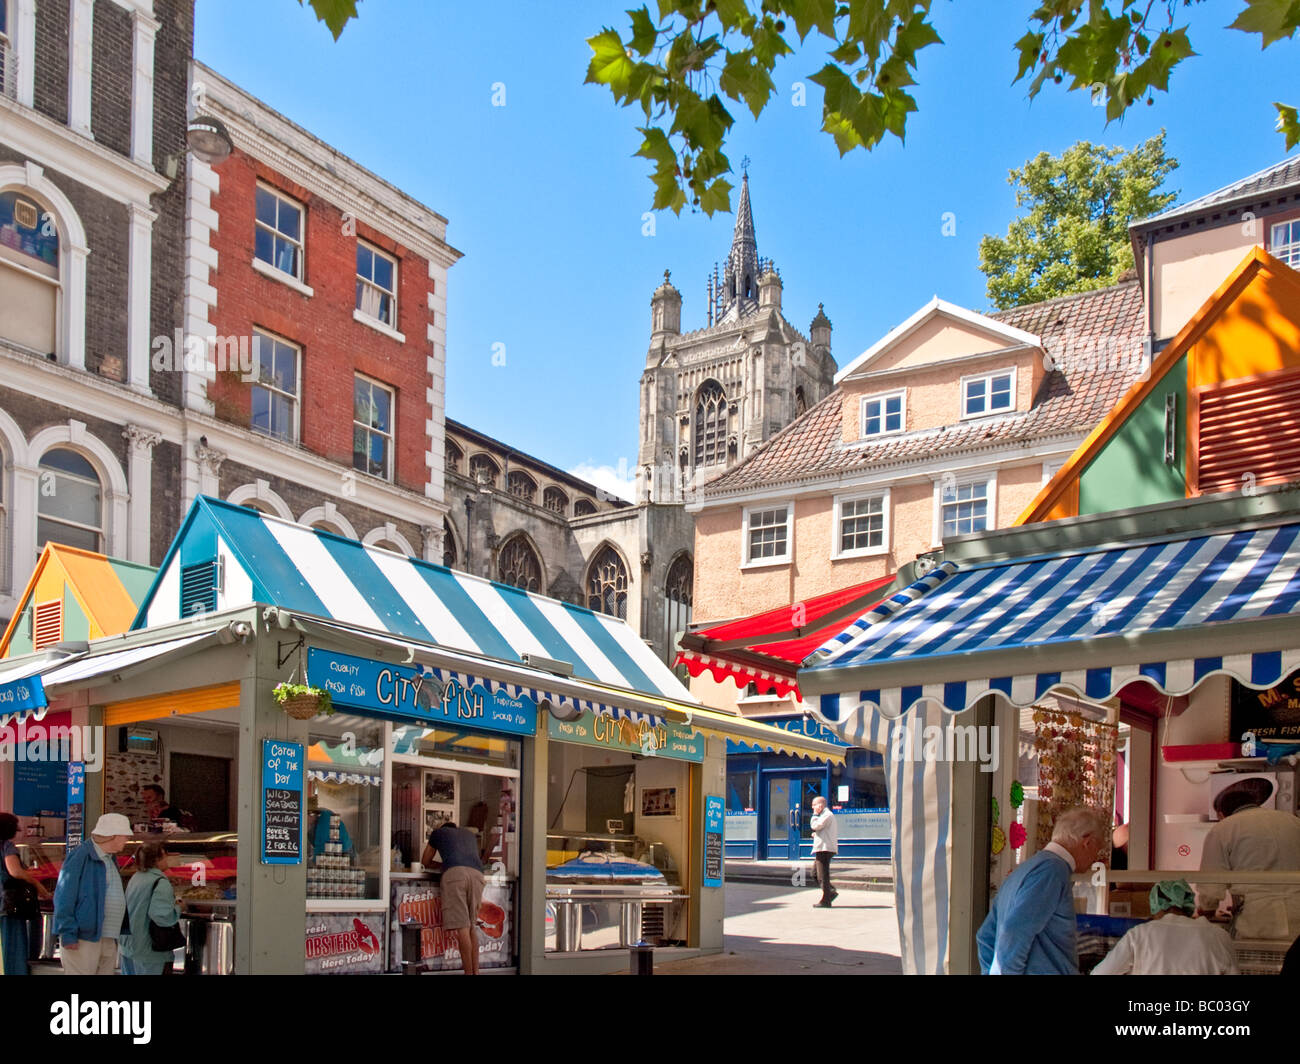 Corner of Norwich Market showing St Peter Mancroft Medieval Church, market stalls & Old buildings Stock Photo